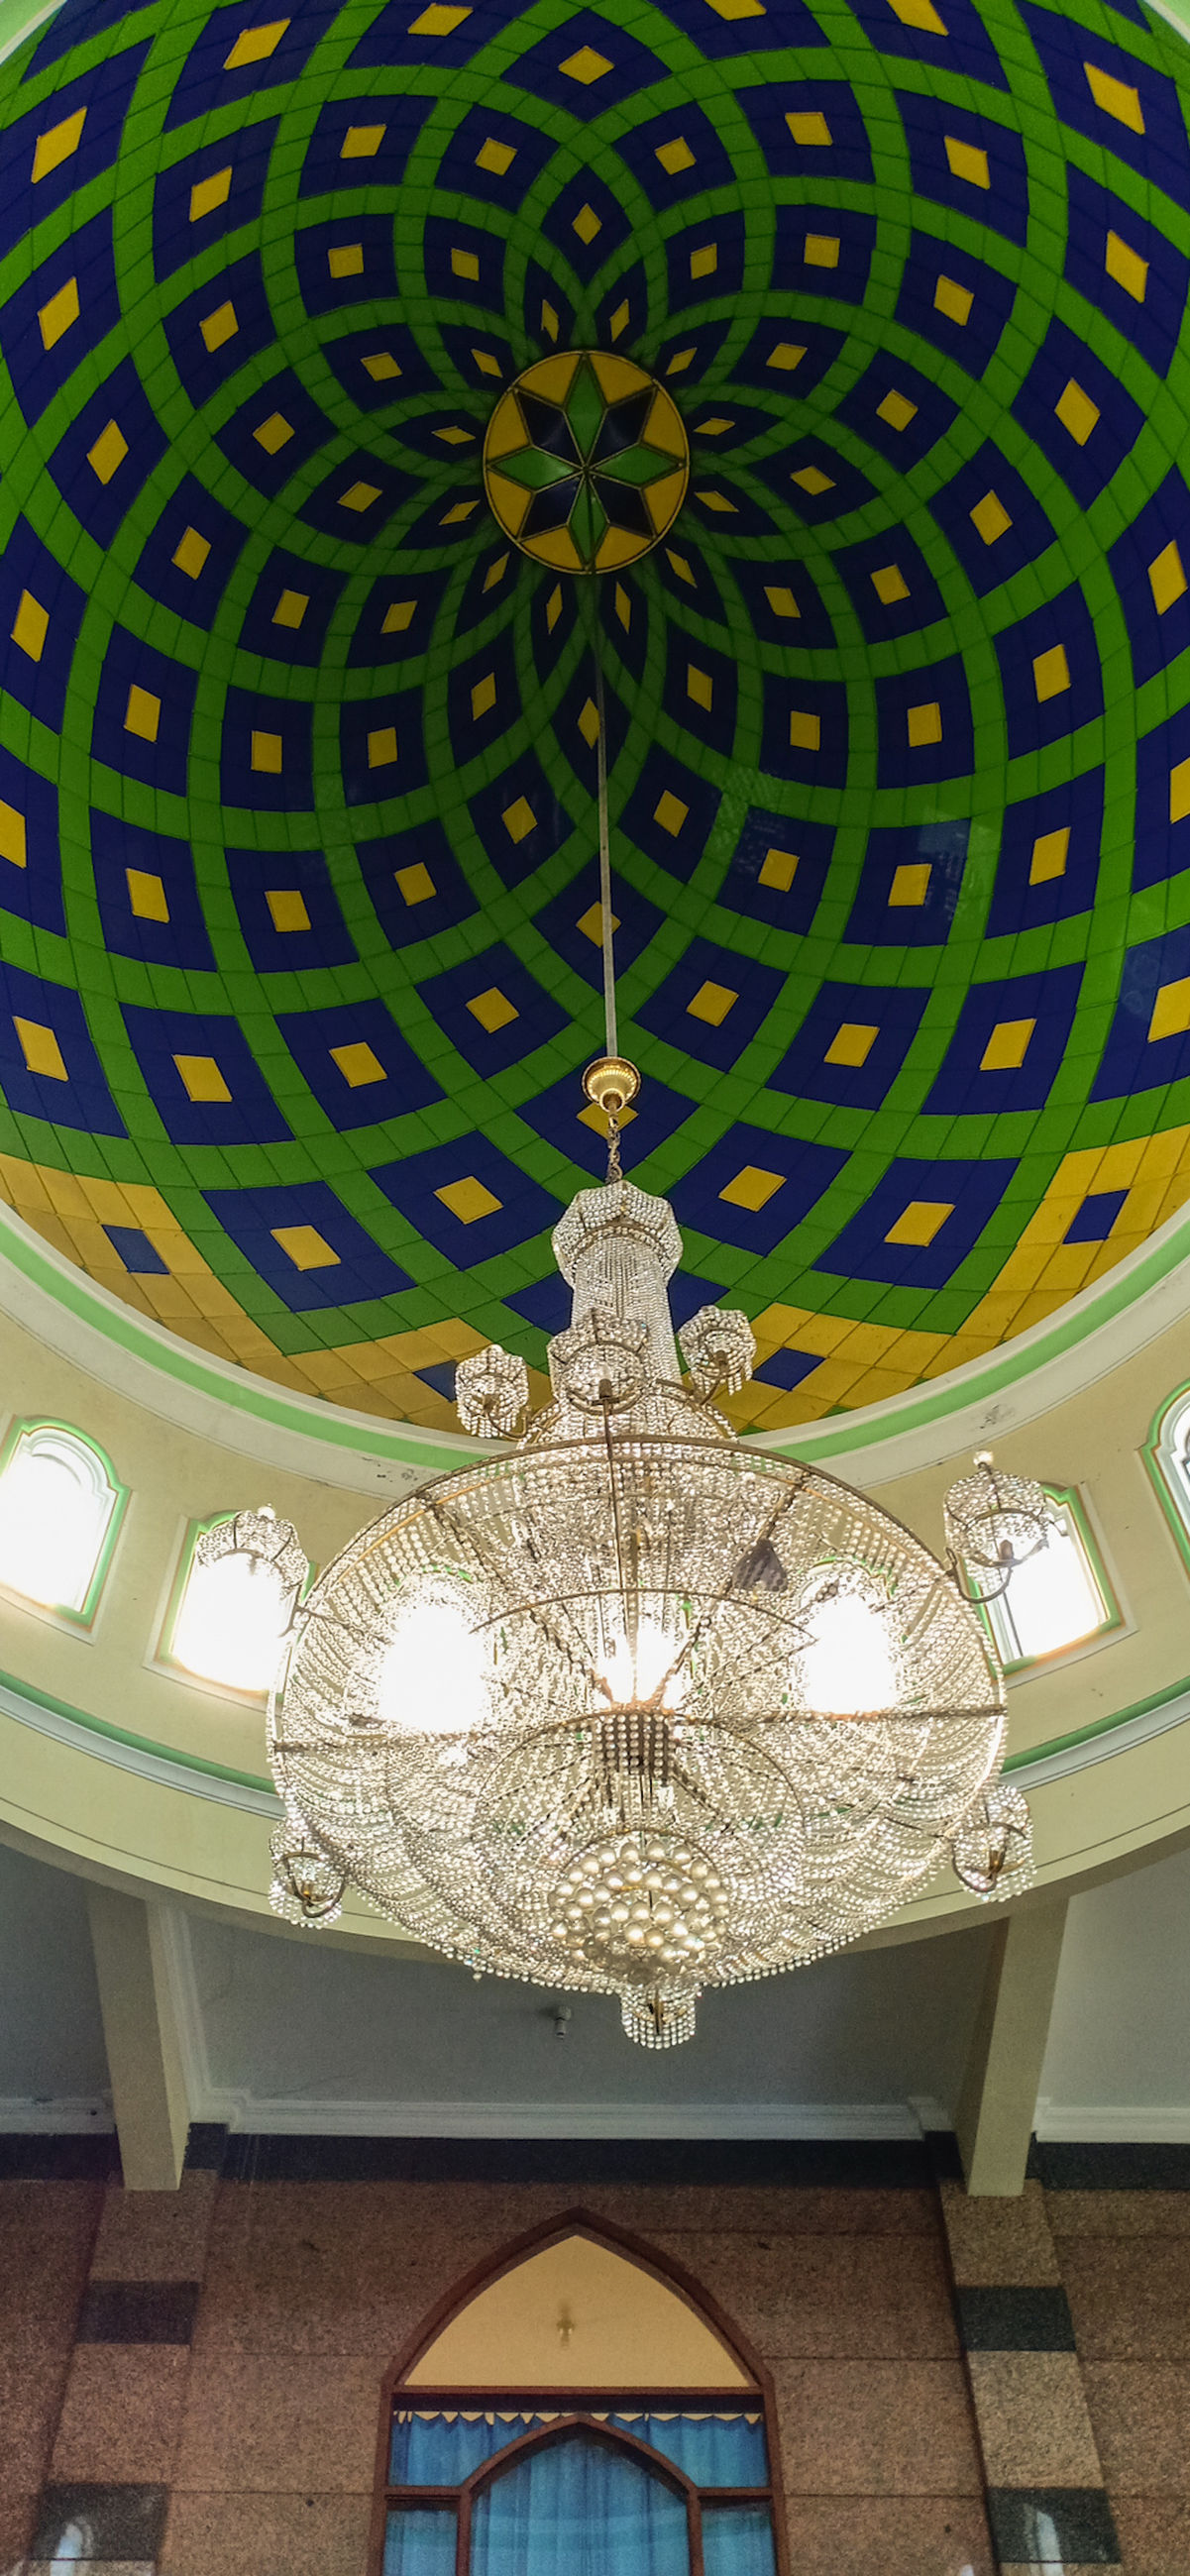 ceiling, illuminated, lighting equipment, chandelier, low angle view, indoors, hanging, pattern, decoration, architecture, built structure, no people, light, wealth, glowing, luxury, design, pendant light, electric light, ornate, electric lamp, electricity, light fixture, cupola